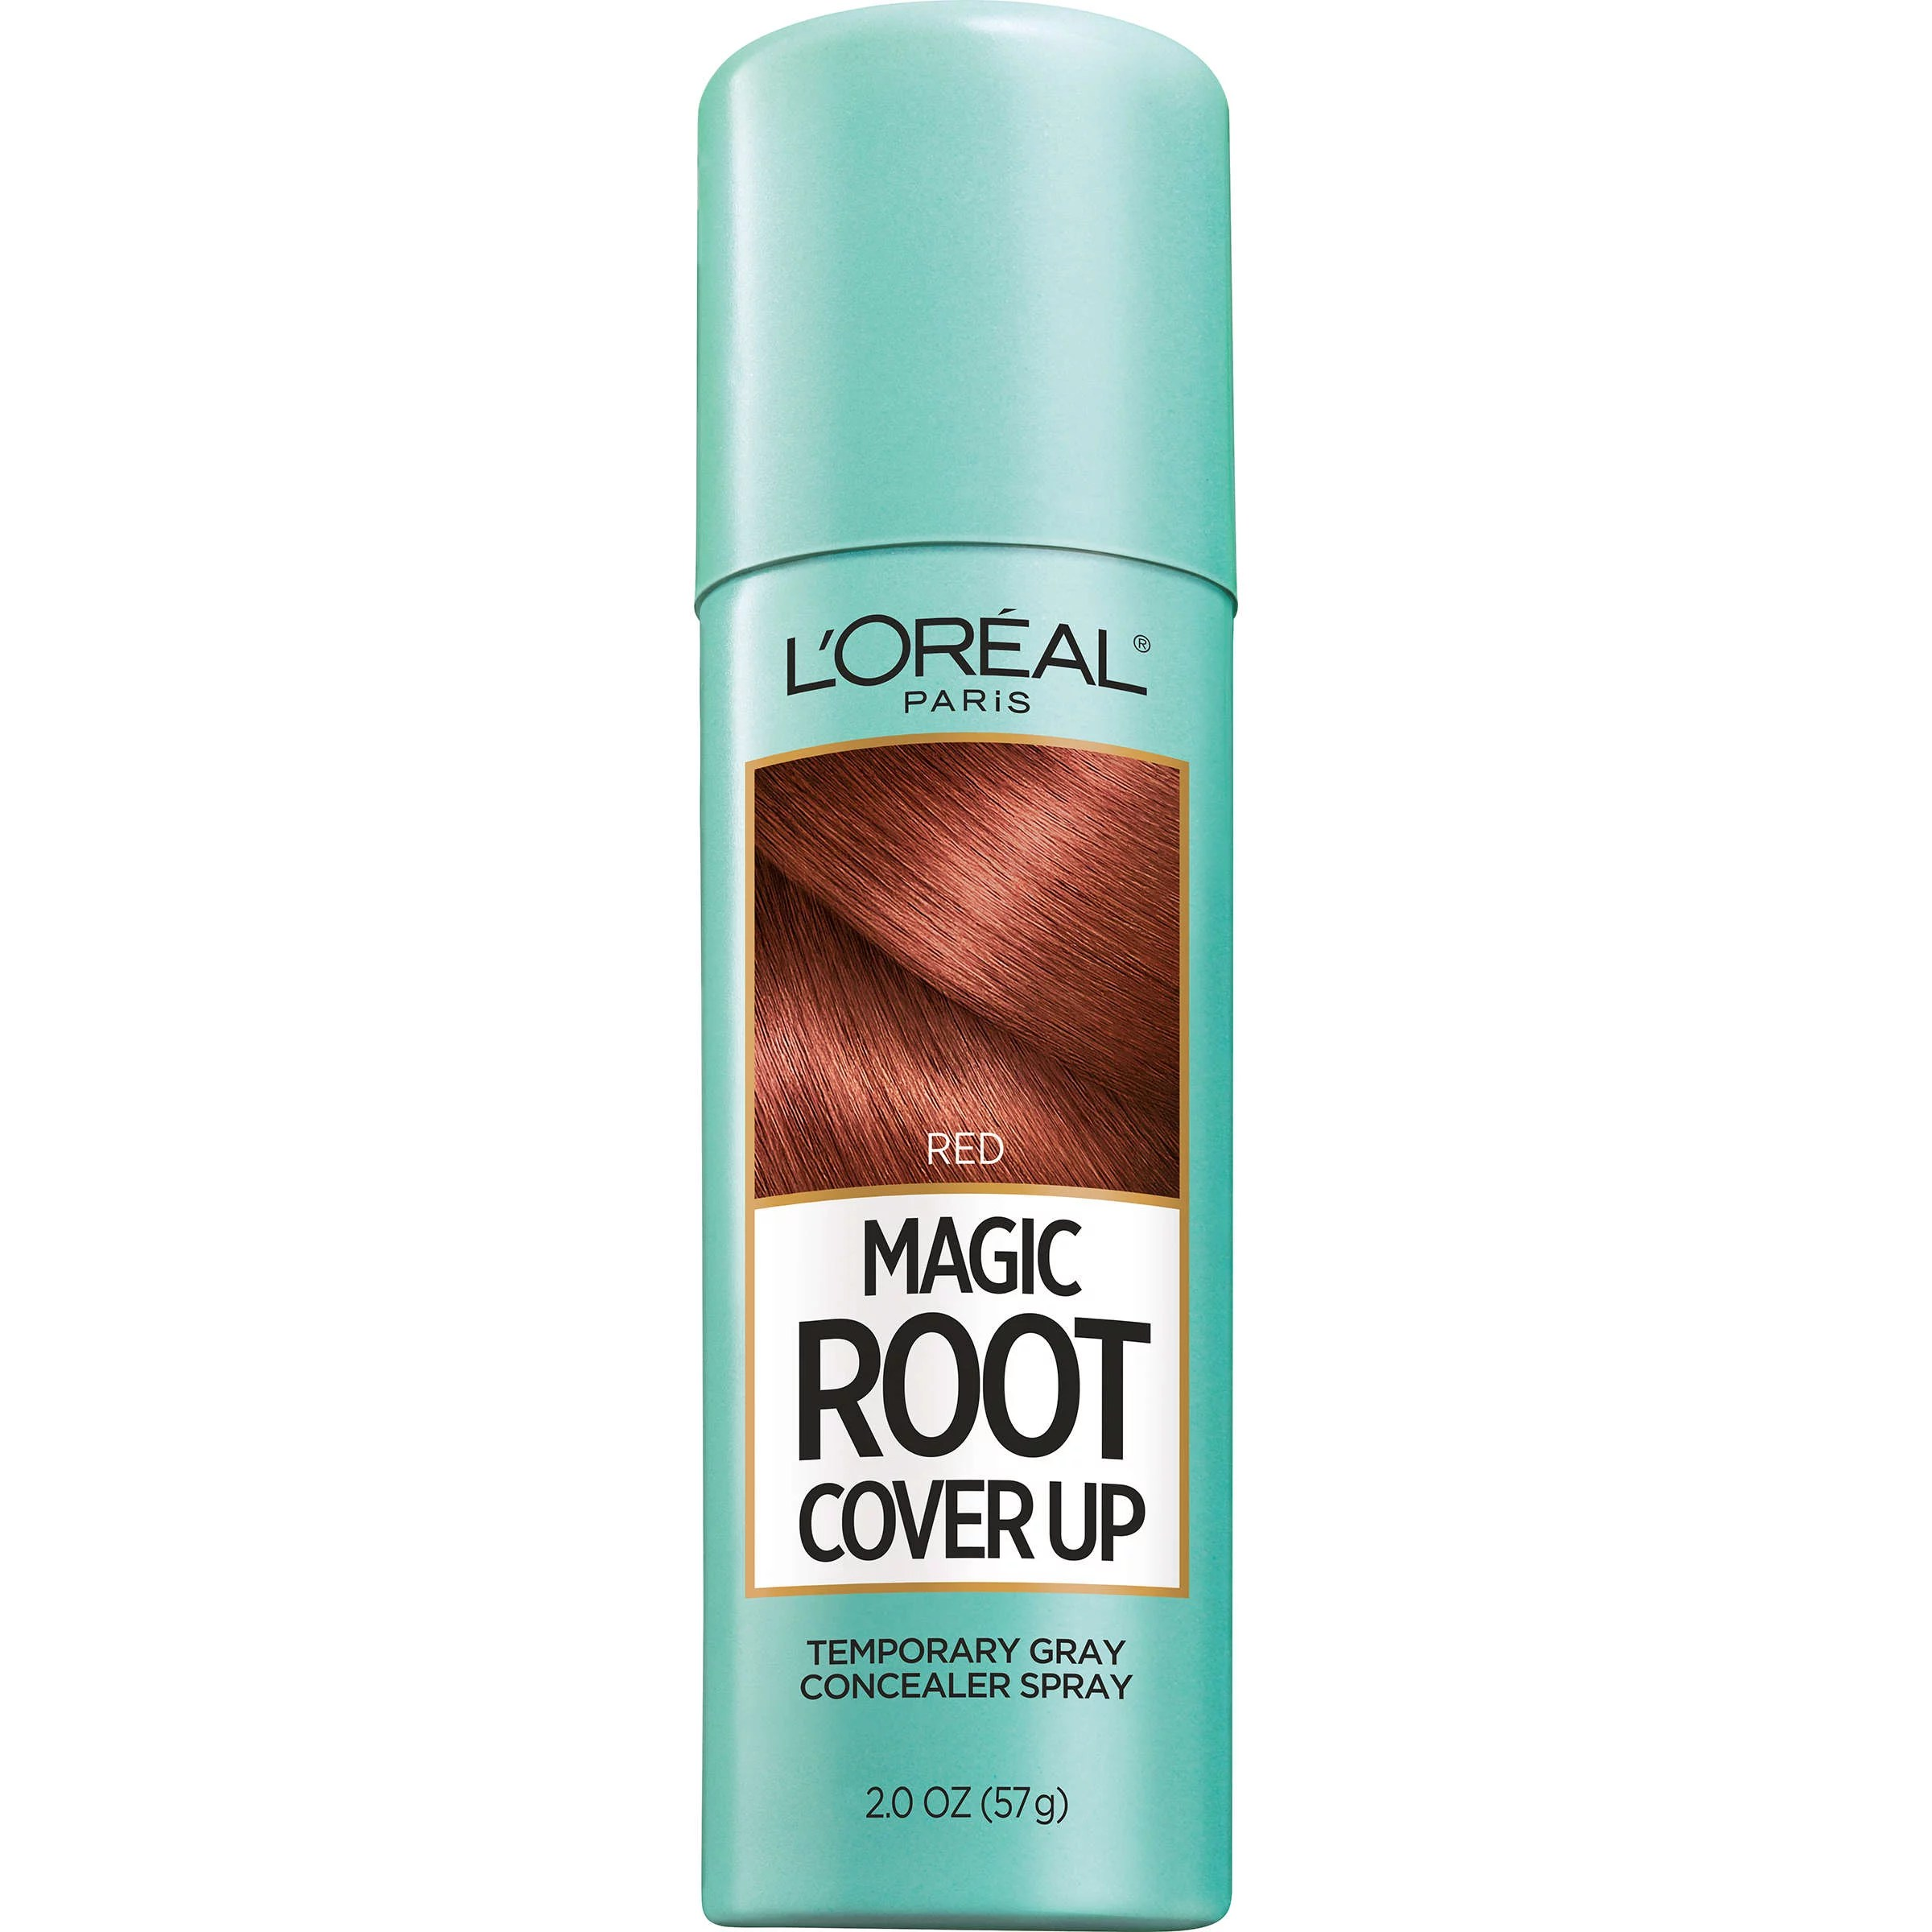 L'Oreal Paris Magic Root Cover Up Gray Concealer Spray, Red, 2 oz.